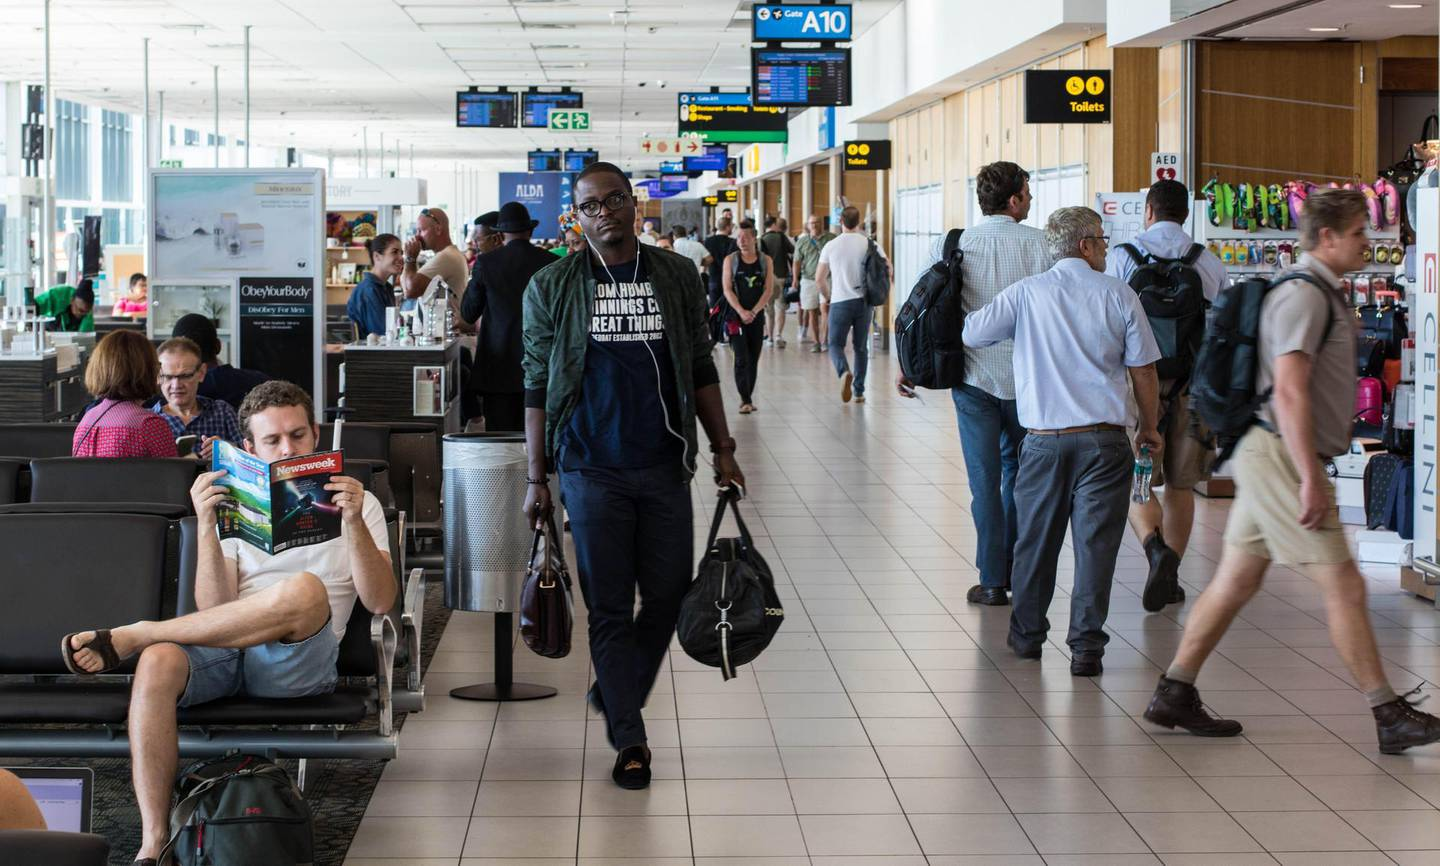 M73C6F Cape Town, South Africa - unidentified passengers await their flights at the local departures terminal at Cape Town International Airport in the city. Alamy Stock Photo